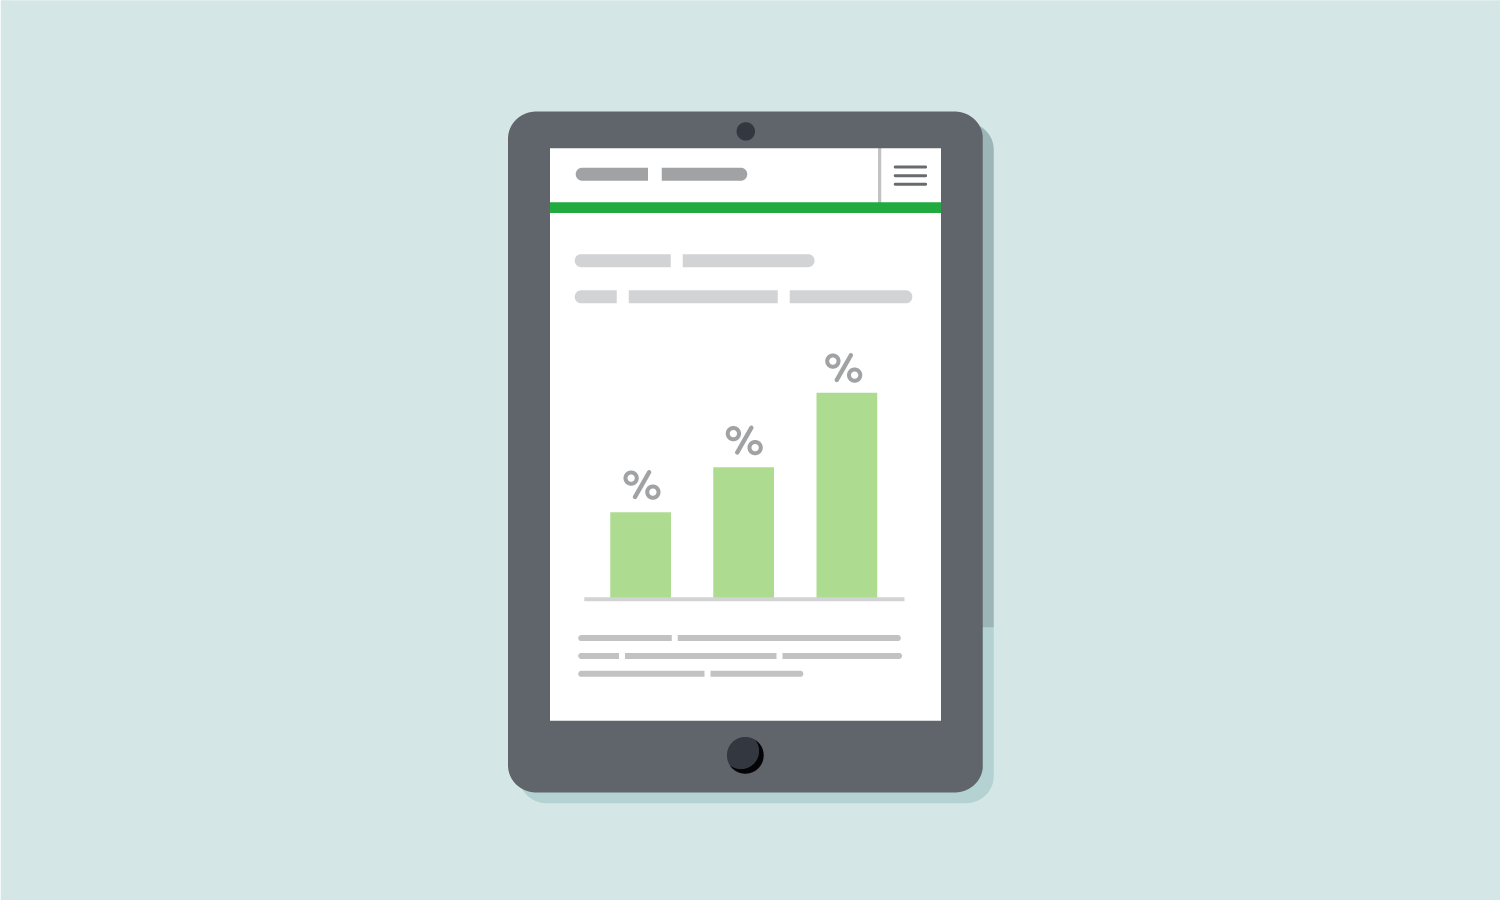 Illustration of an iPad displaying a bar chart